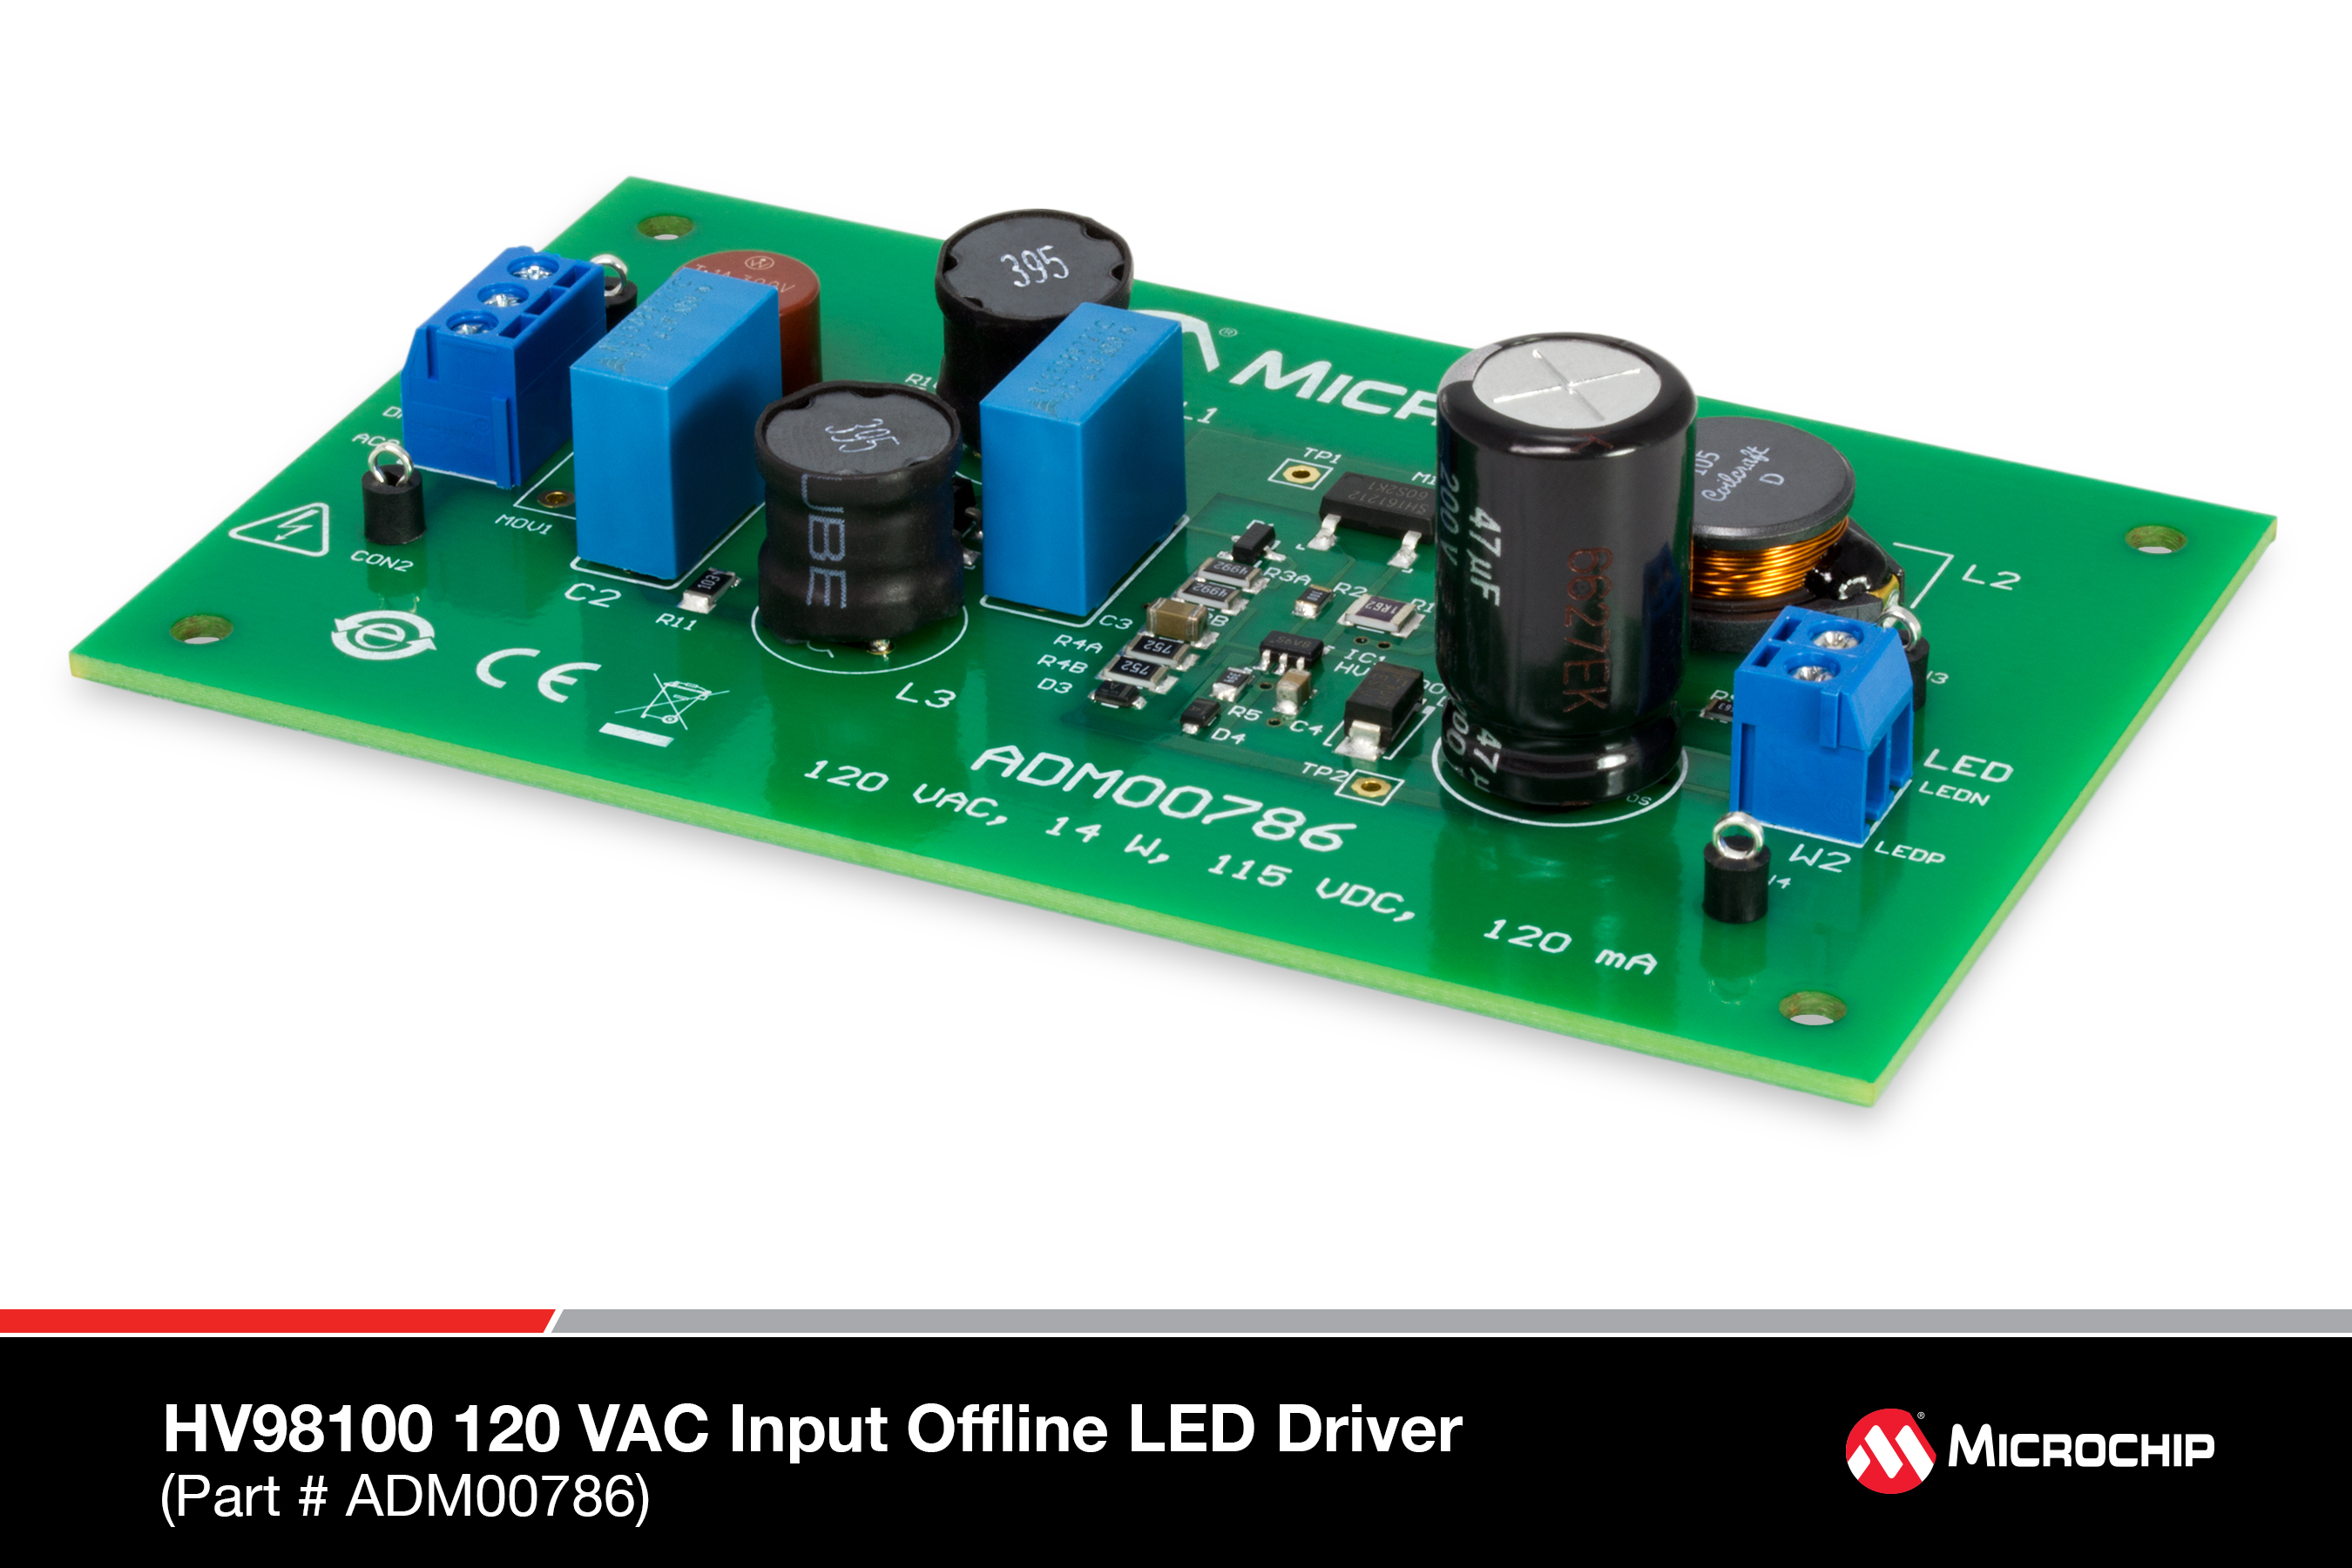 Development Tools Input Voltage Range High Power Led Driver Circuit Schematic Diagram The Hv98101 230vac Off Line Evaluation Board Is Designed To Demonstrate Performance Of Microchip Technology Incs Ic